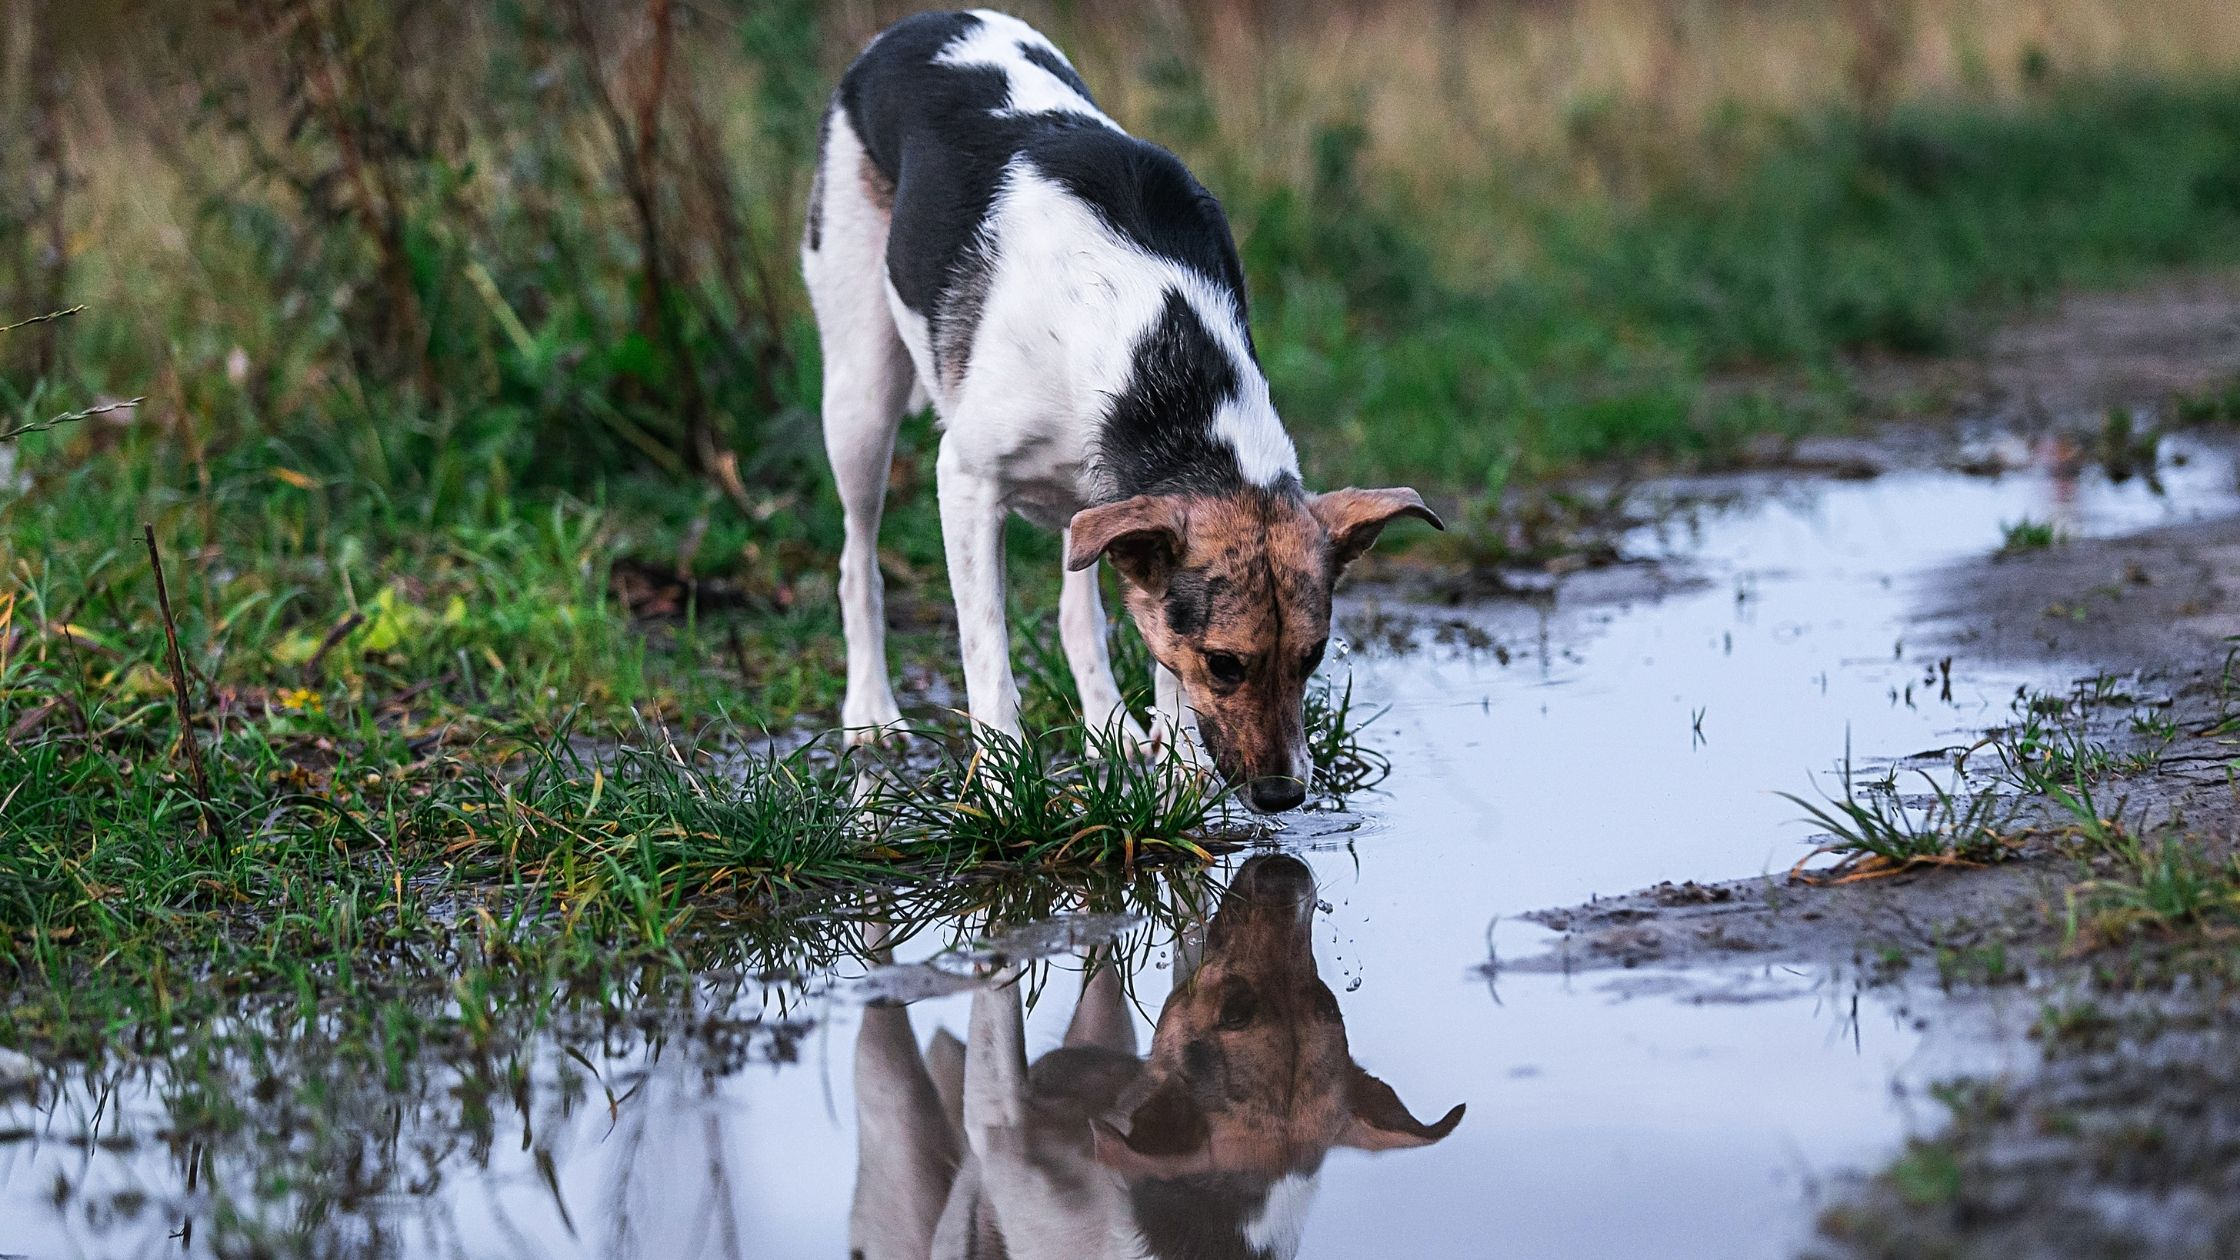 When dogs see puddles, they're often tempted to walk over to it, stick their tongue out, and take a little lick. Find out the hidden hazard.